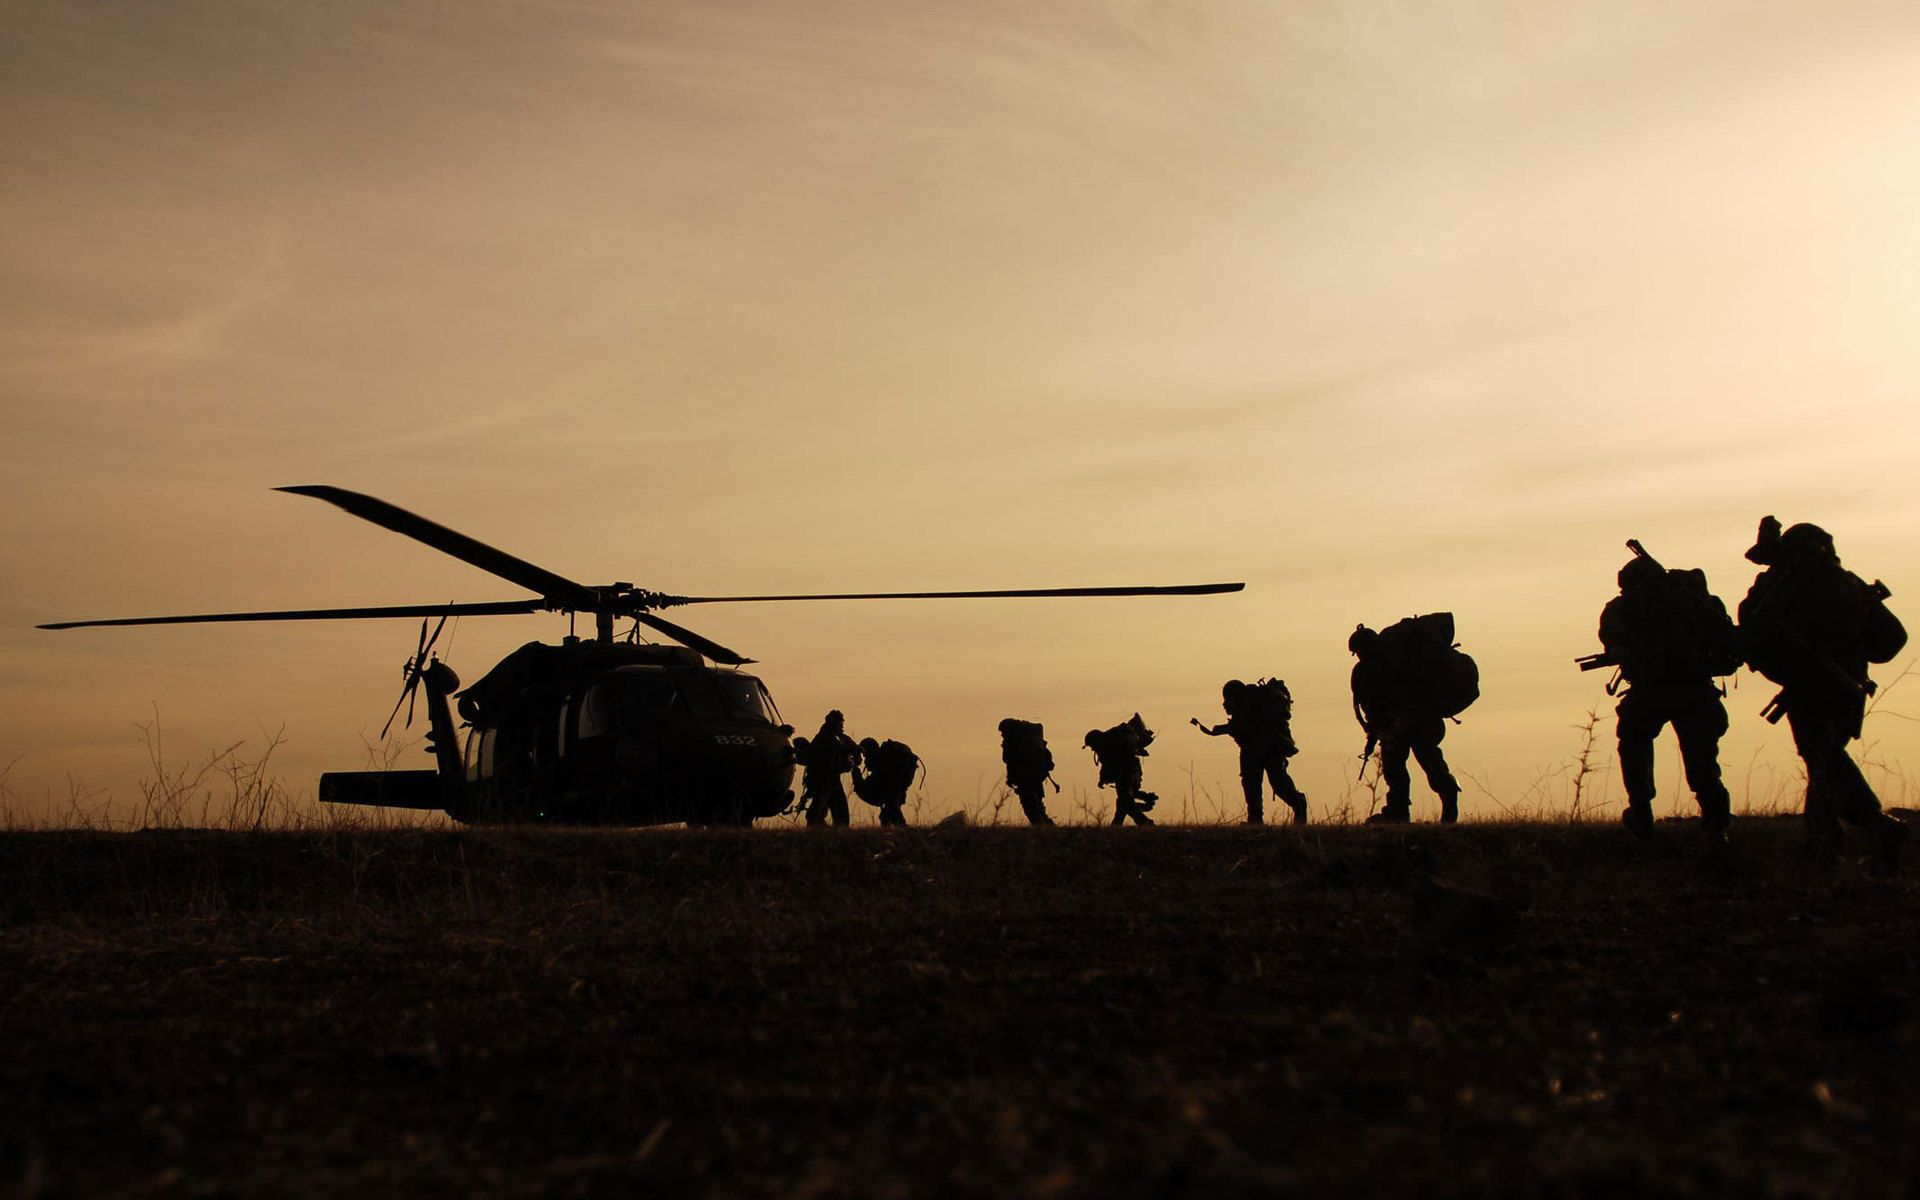 United States Army Wallpapers Top Free United States Army